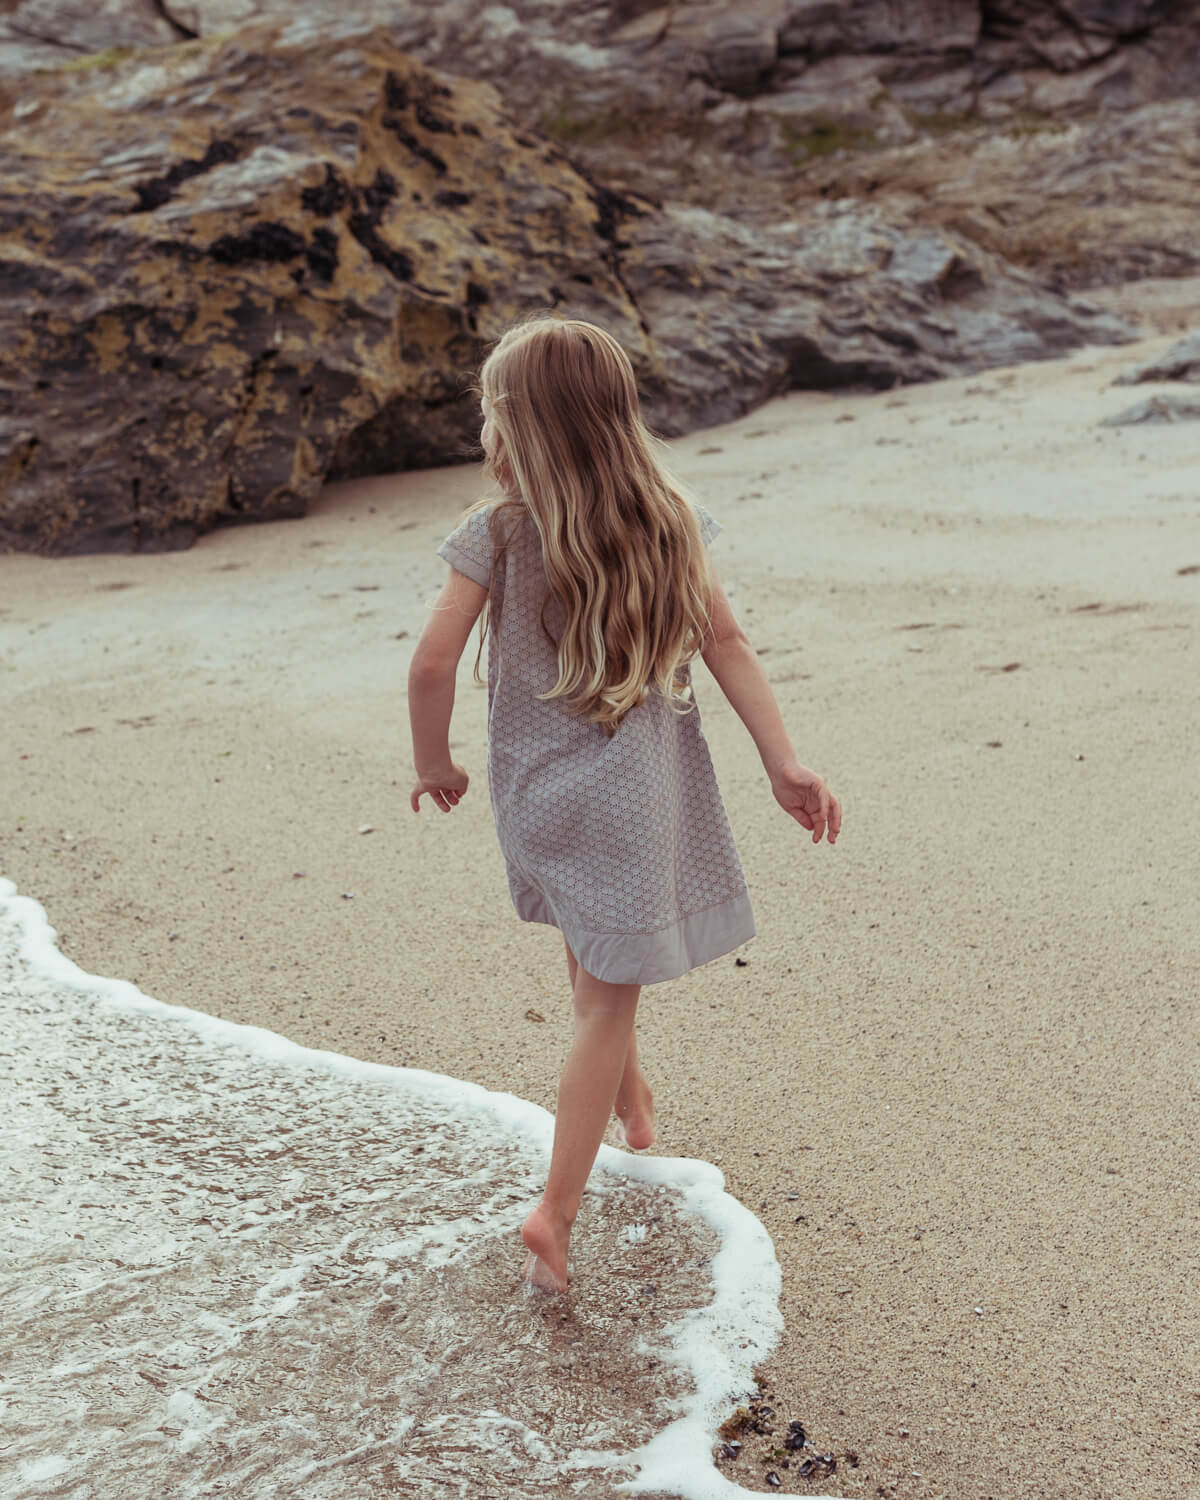 girl, walks away, sandy beach by  lifestyle photographer Tim Cole